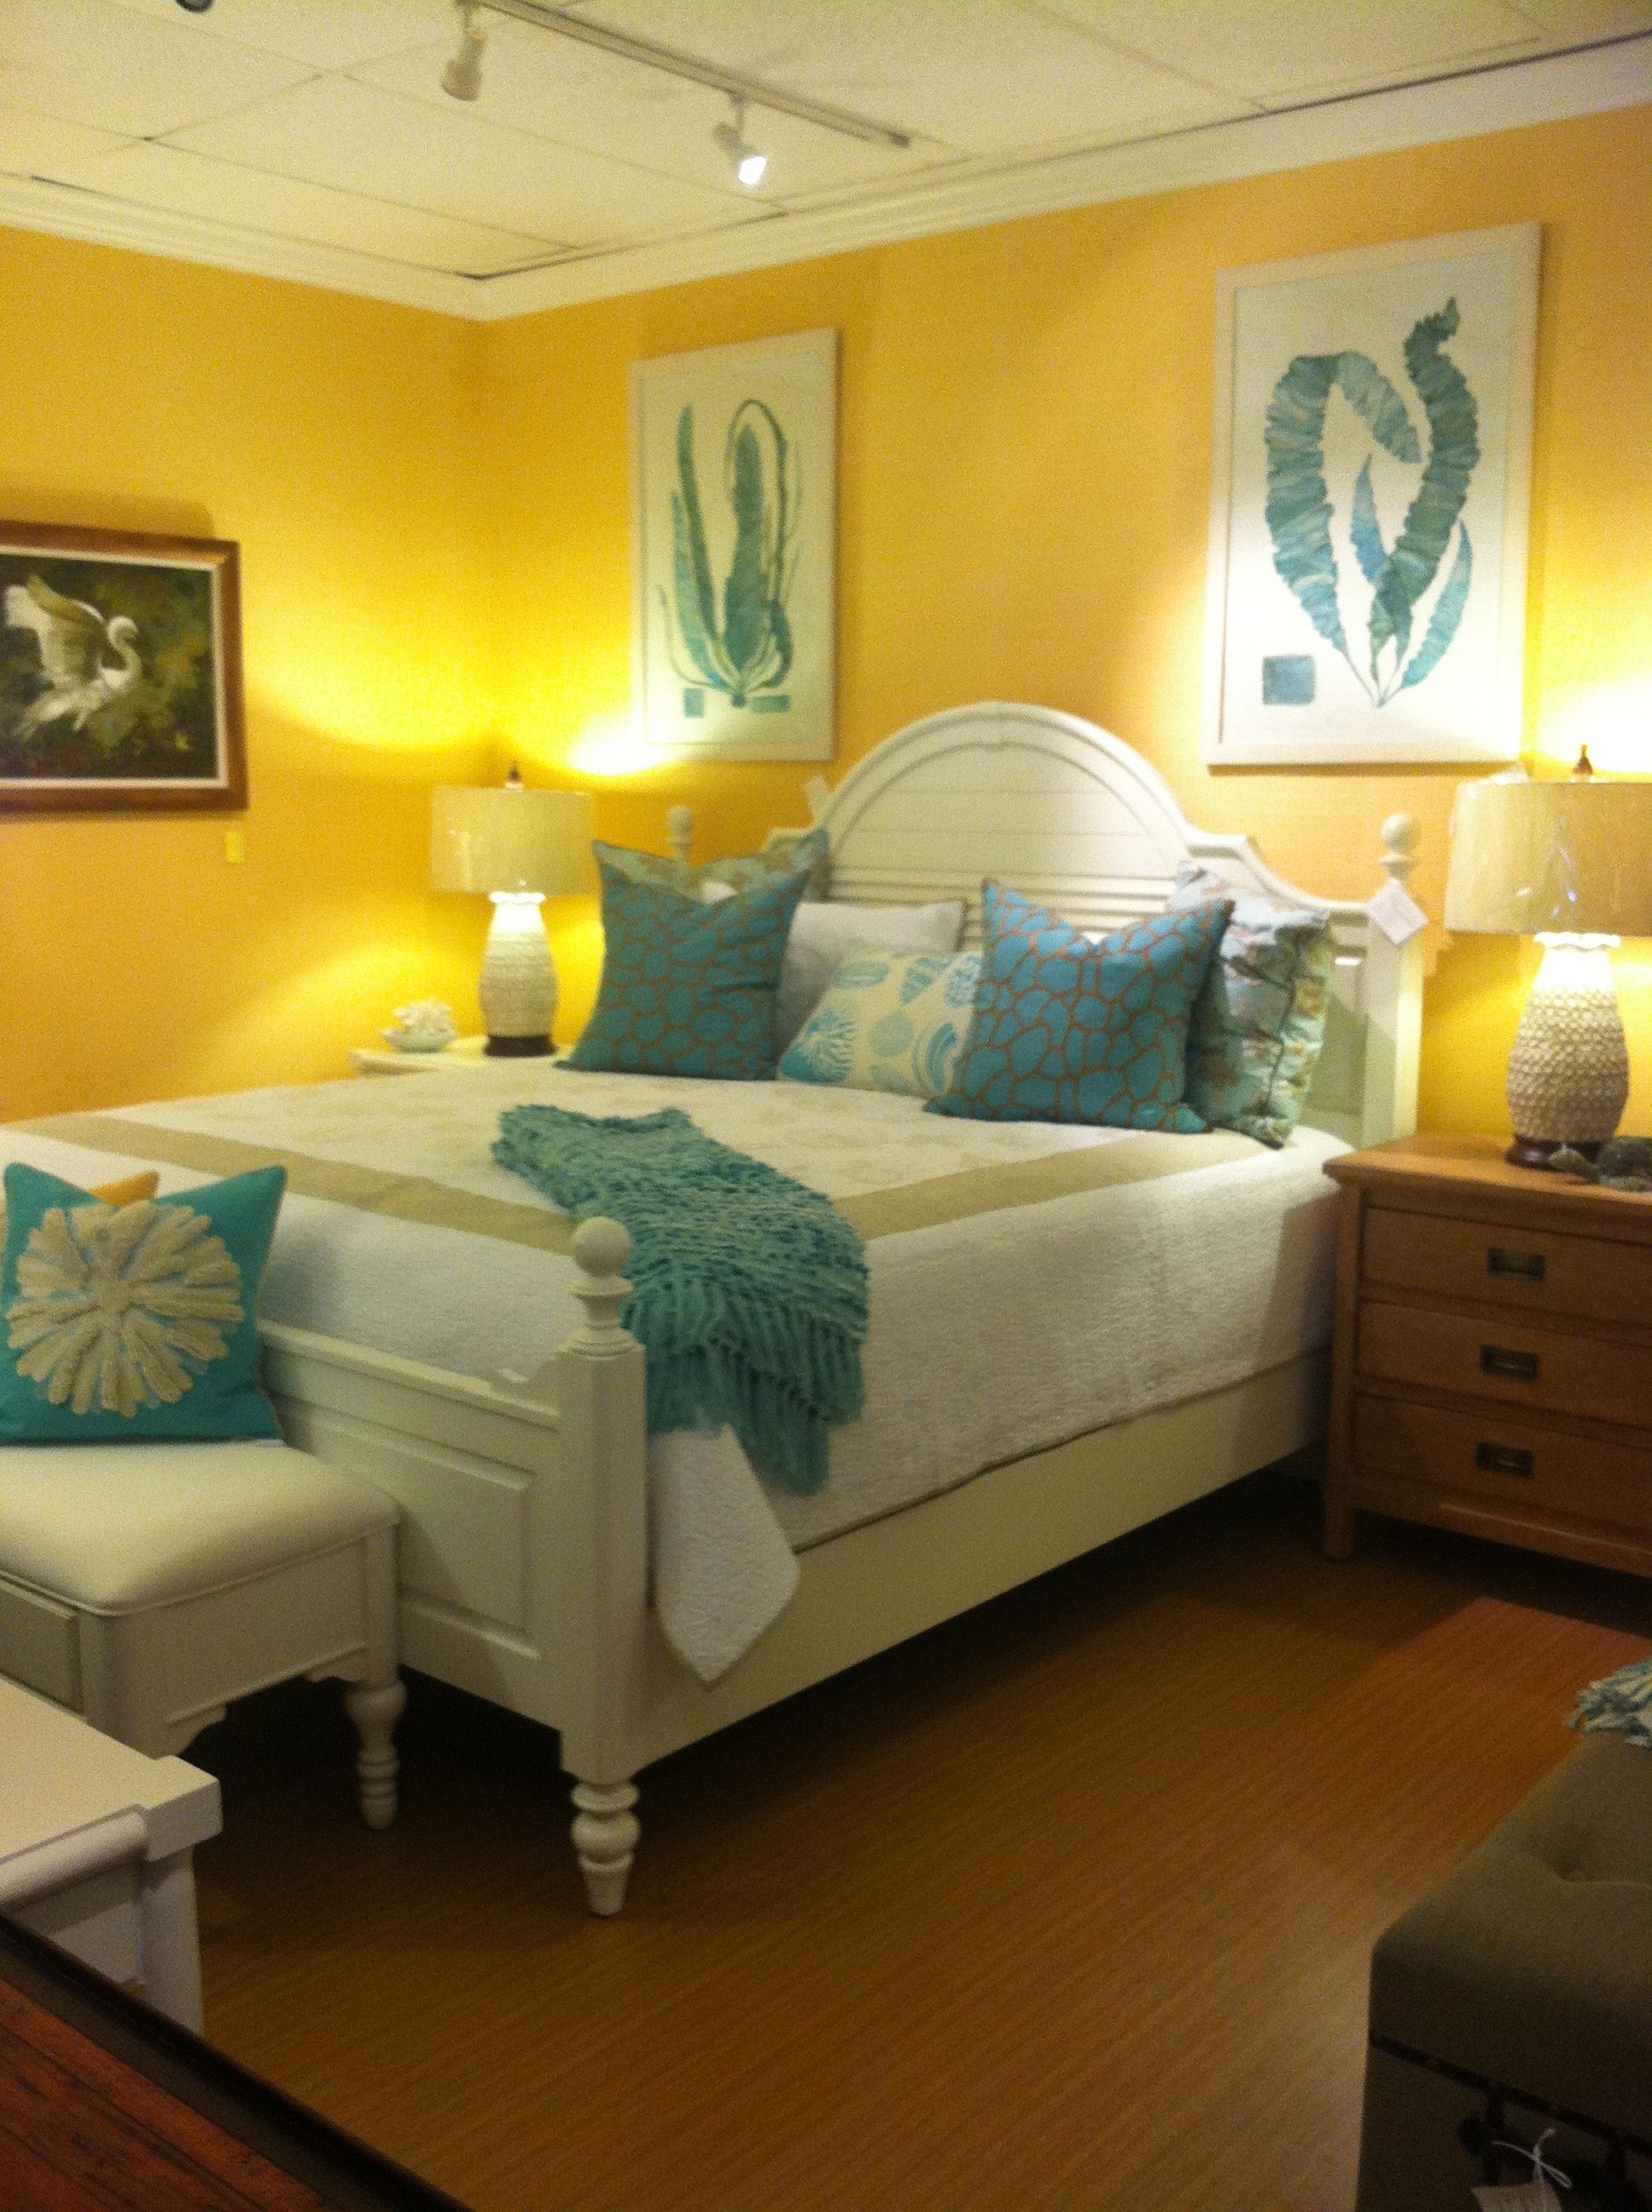 PUNCH OF COLOR Spice up a plain white space with a pop